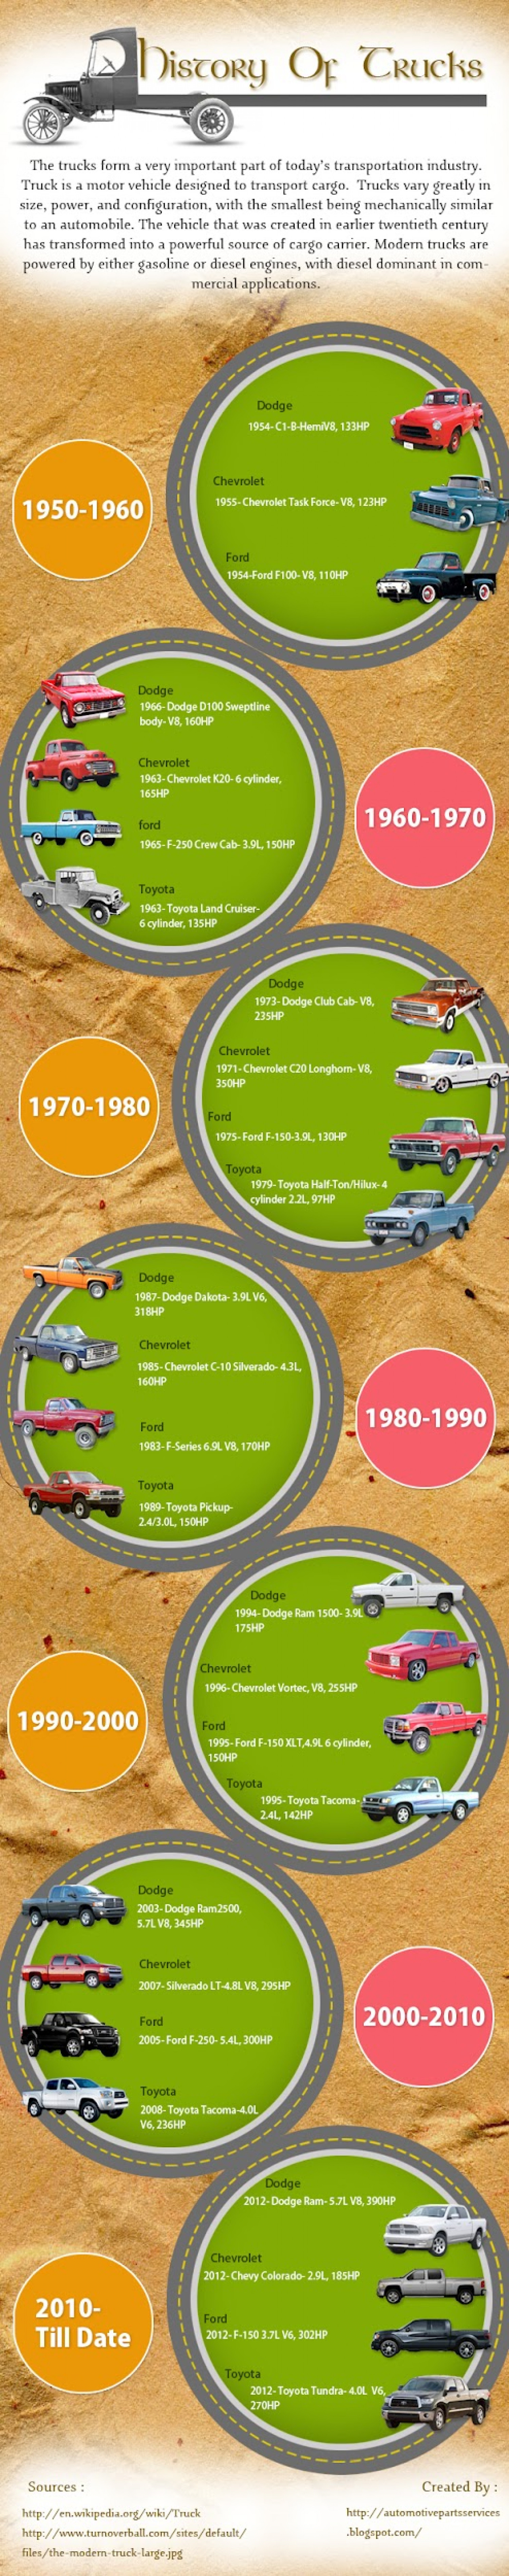 History Of Trucks [Infographic] Infographic